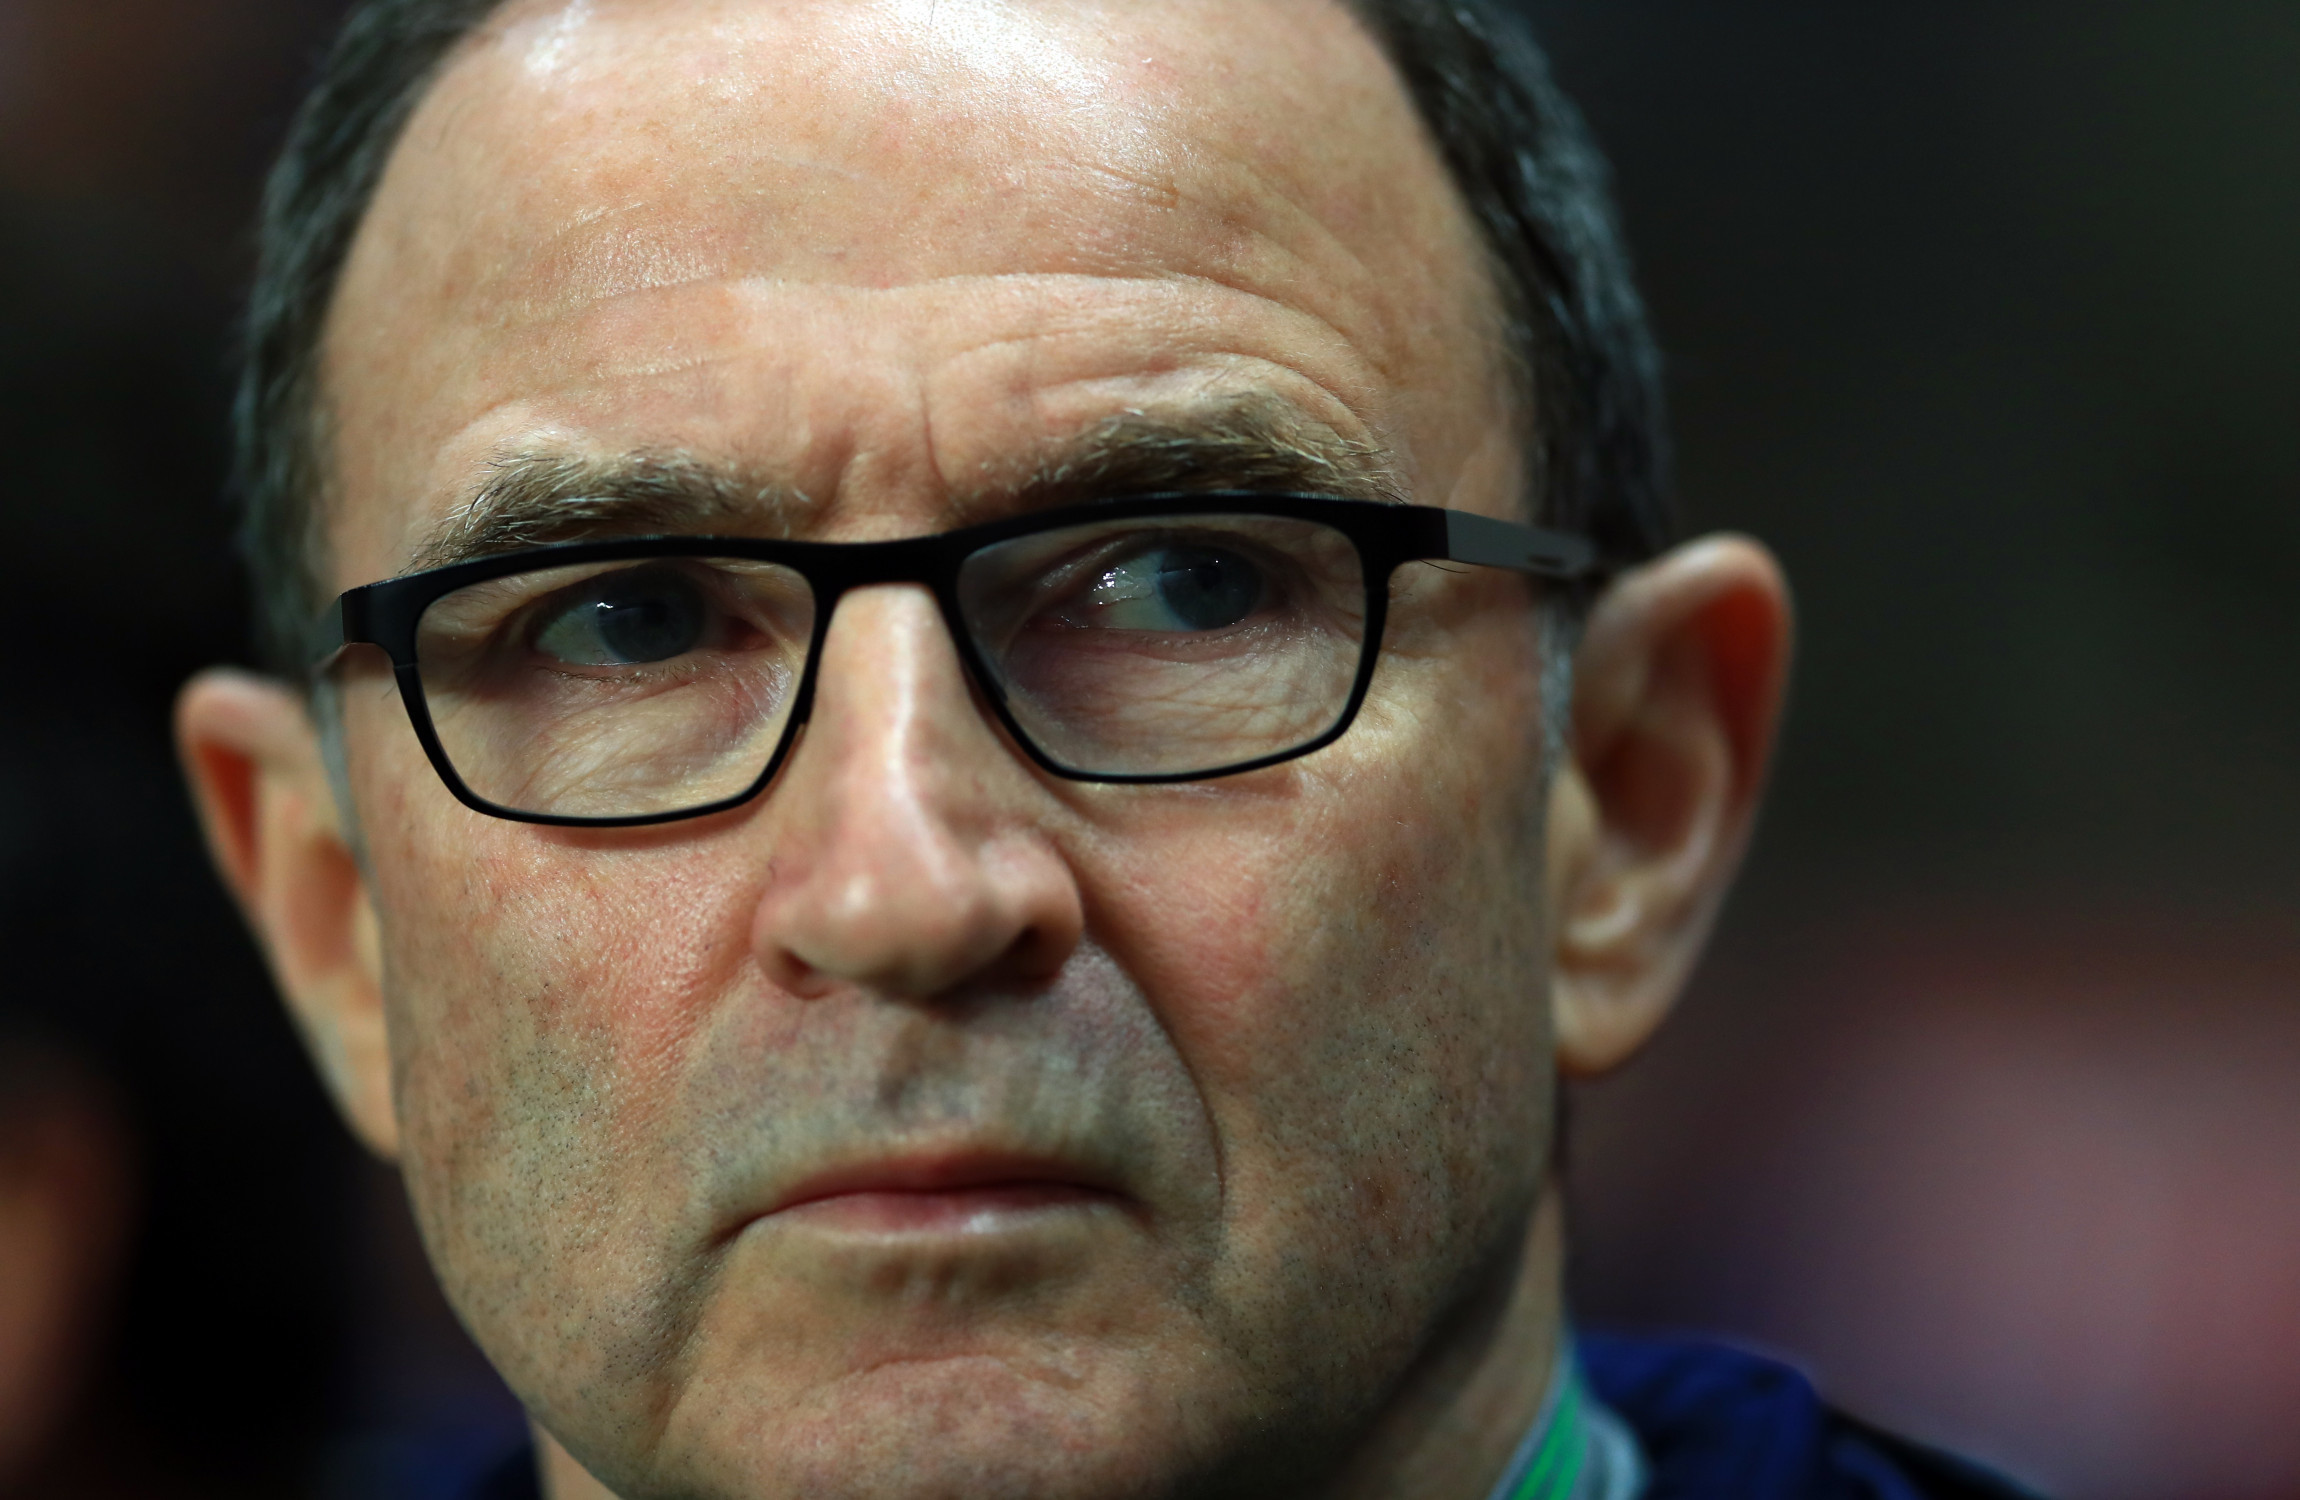 Ireland manager Martin O'Neill has turned down the Stoke City job